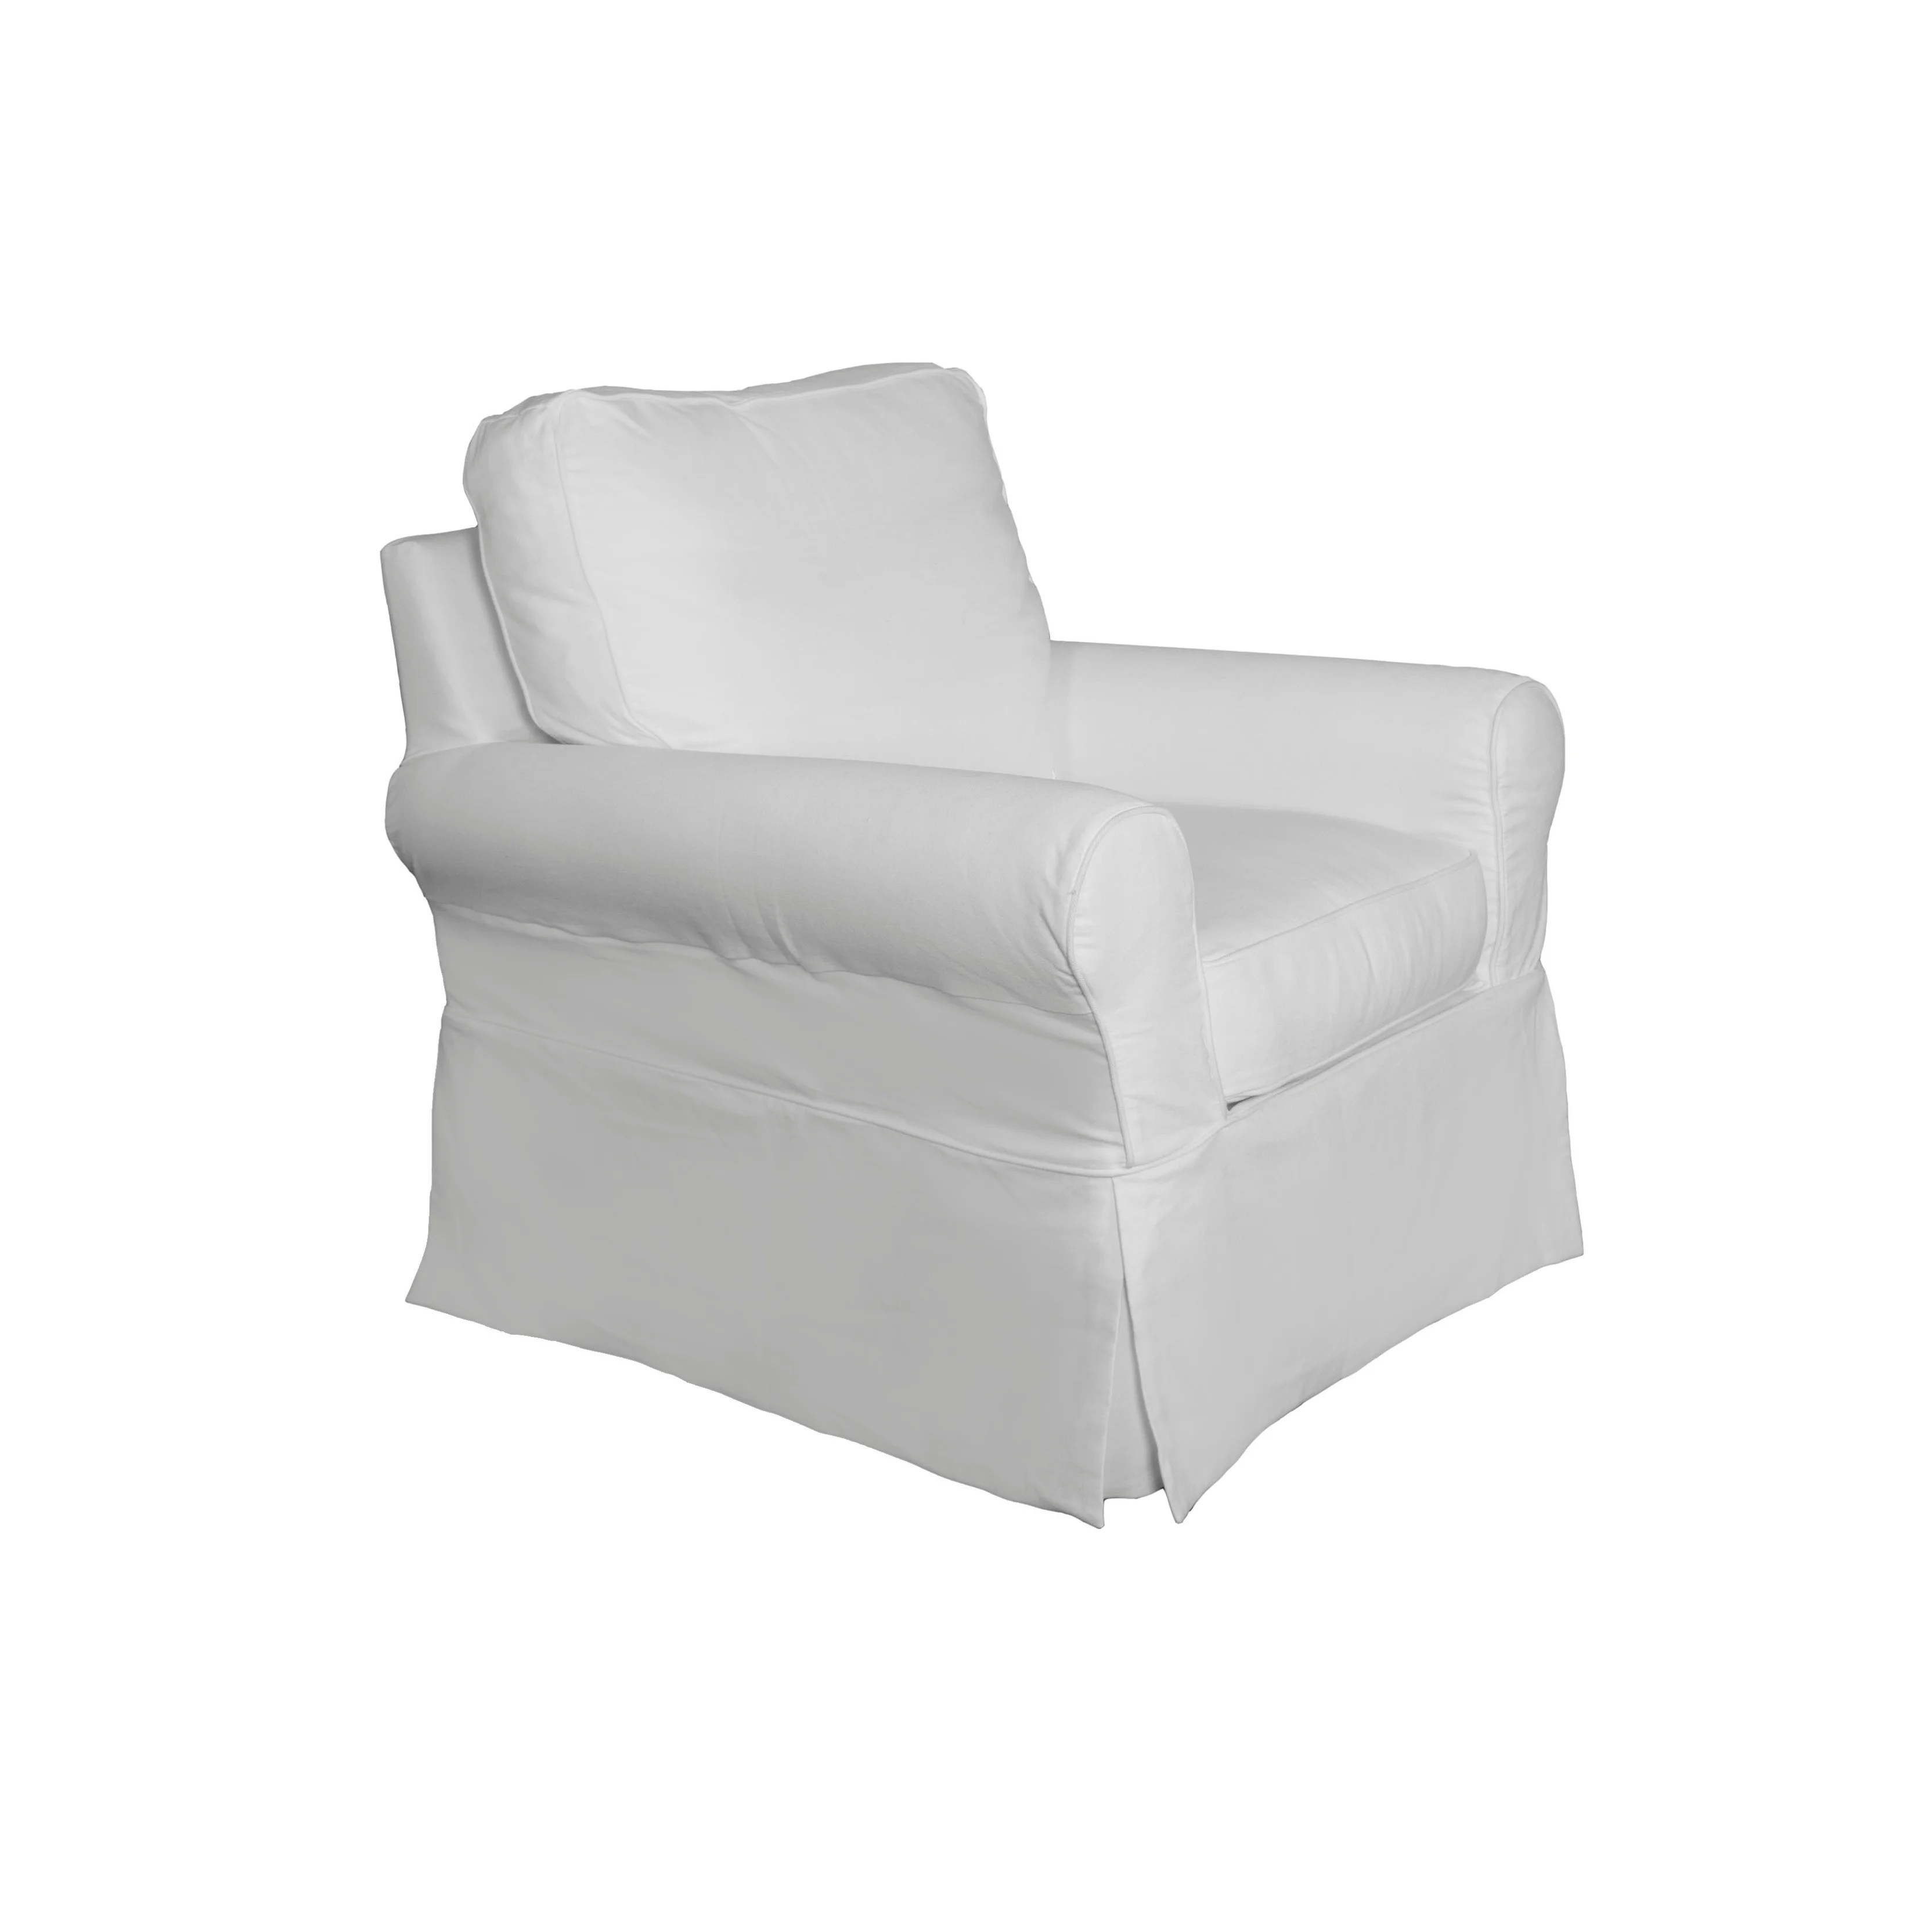 white slipcover chair and ottoman john lewis directors covers shop sunset trading horizon box cushion set performance